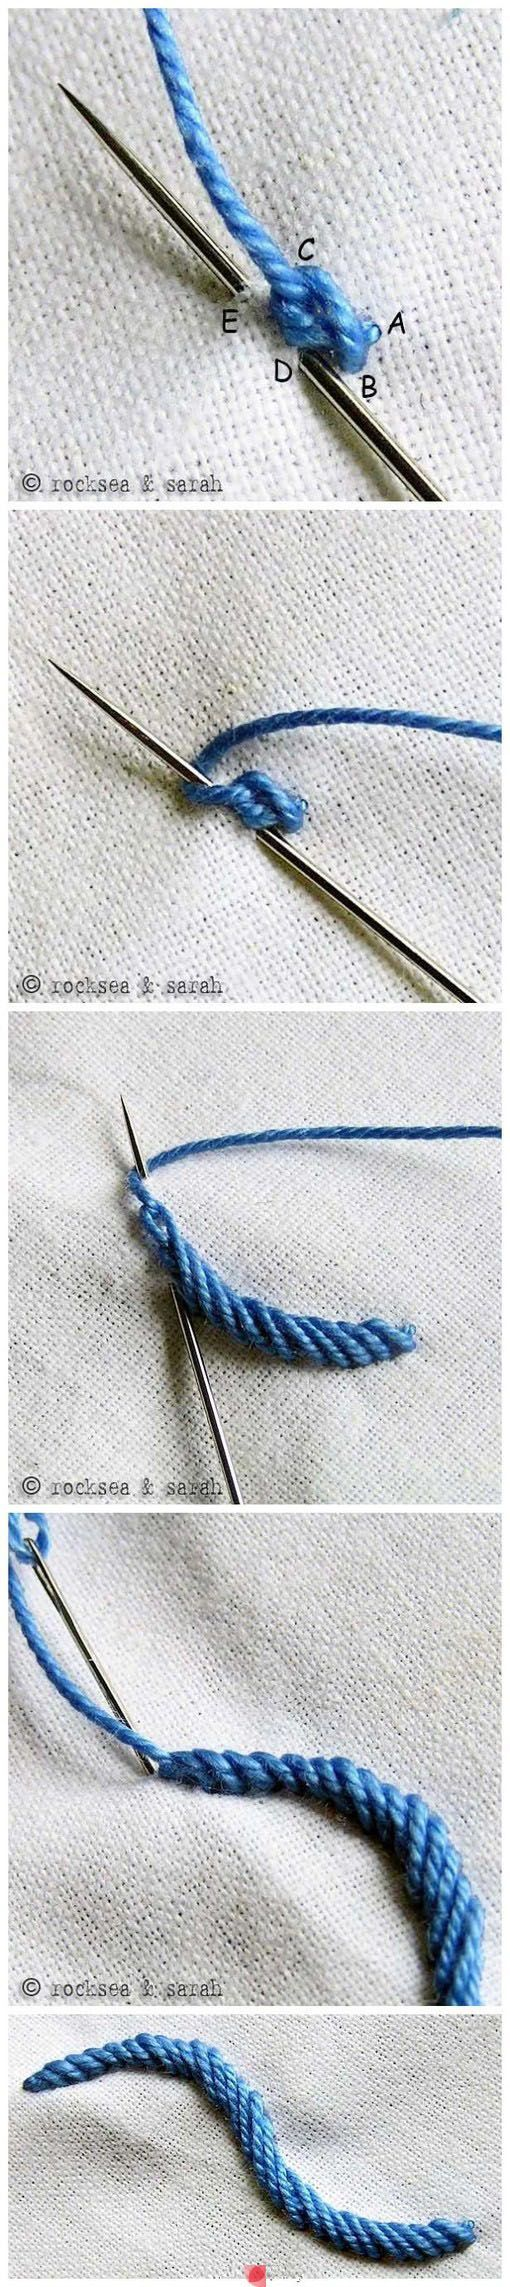 best needle images on Pinterest Hand embroidery designs